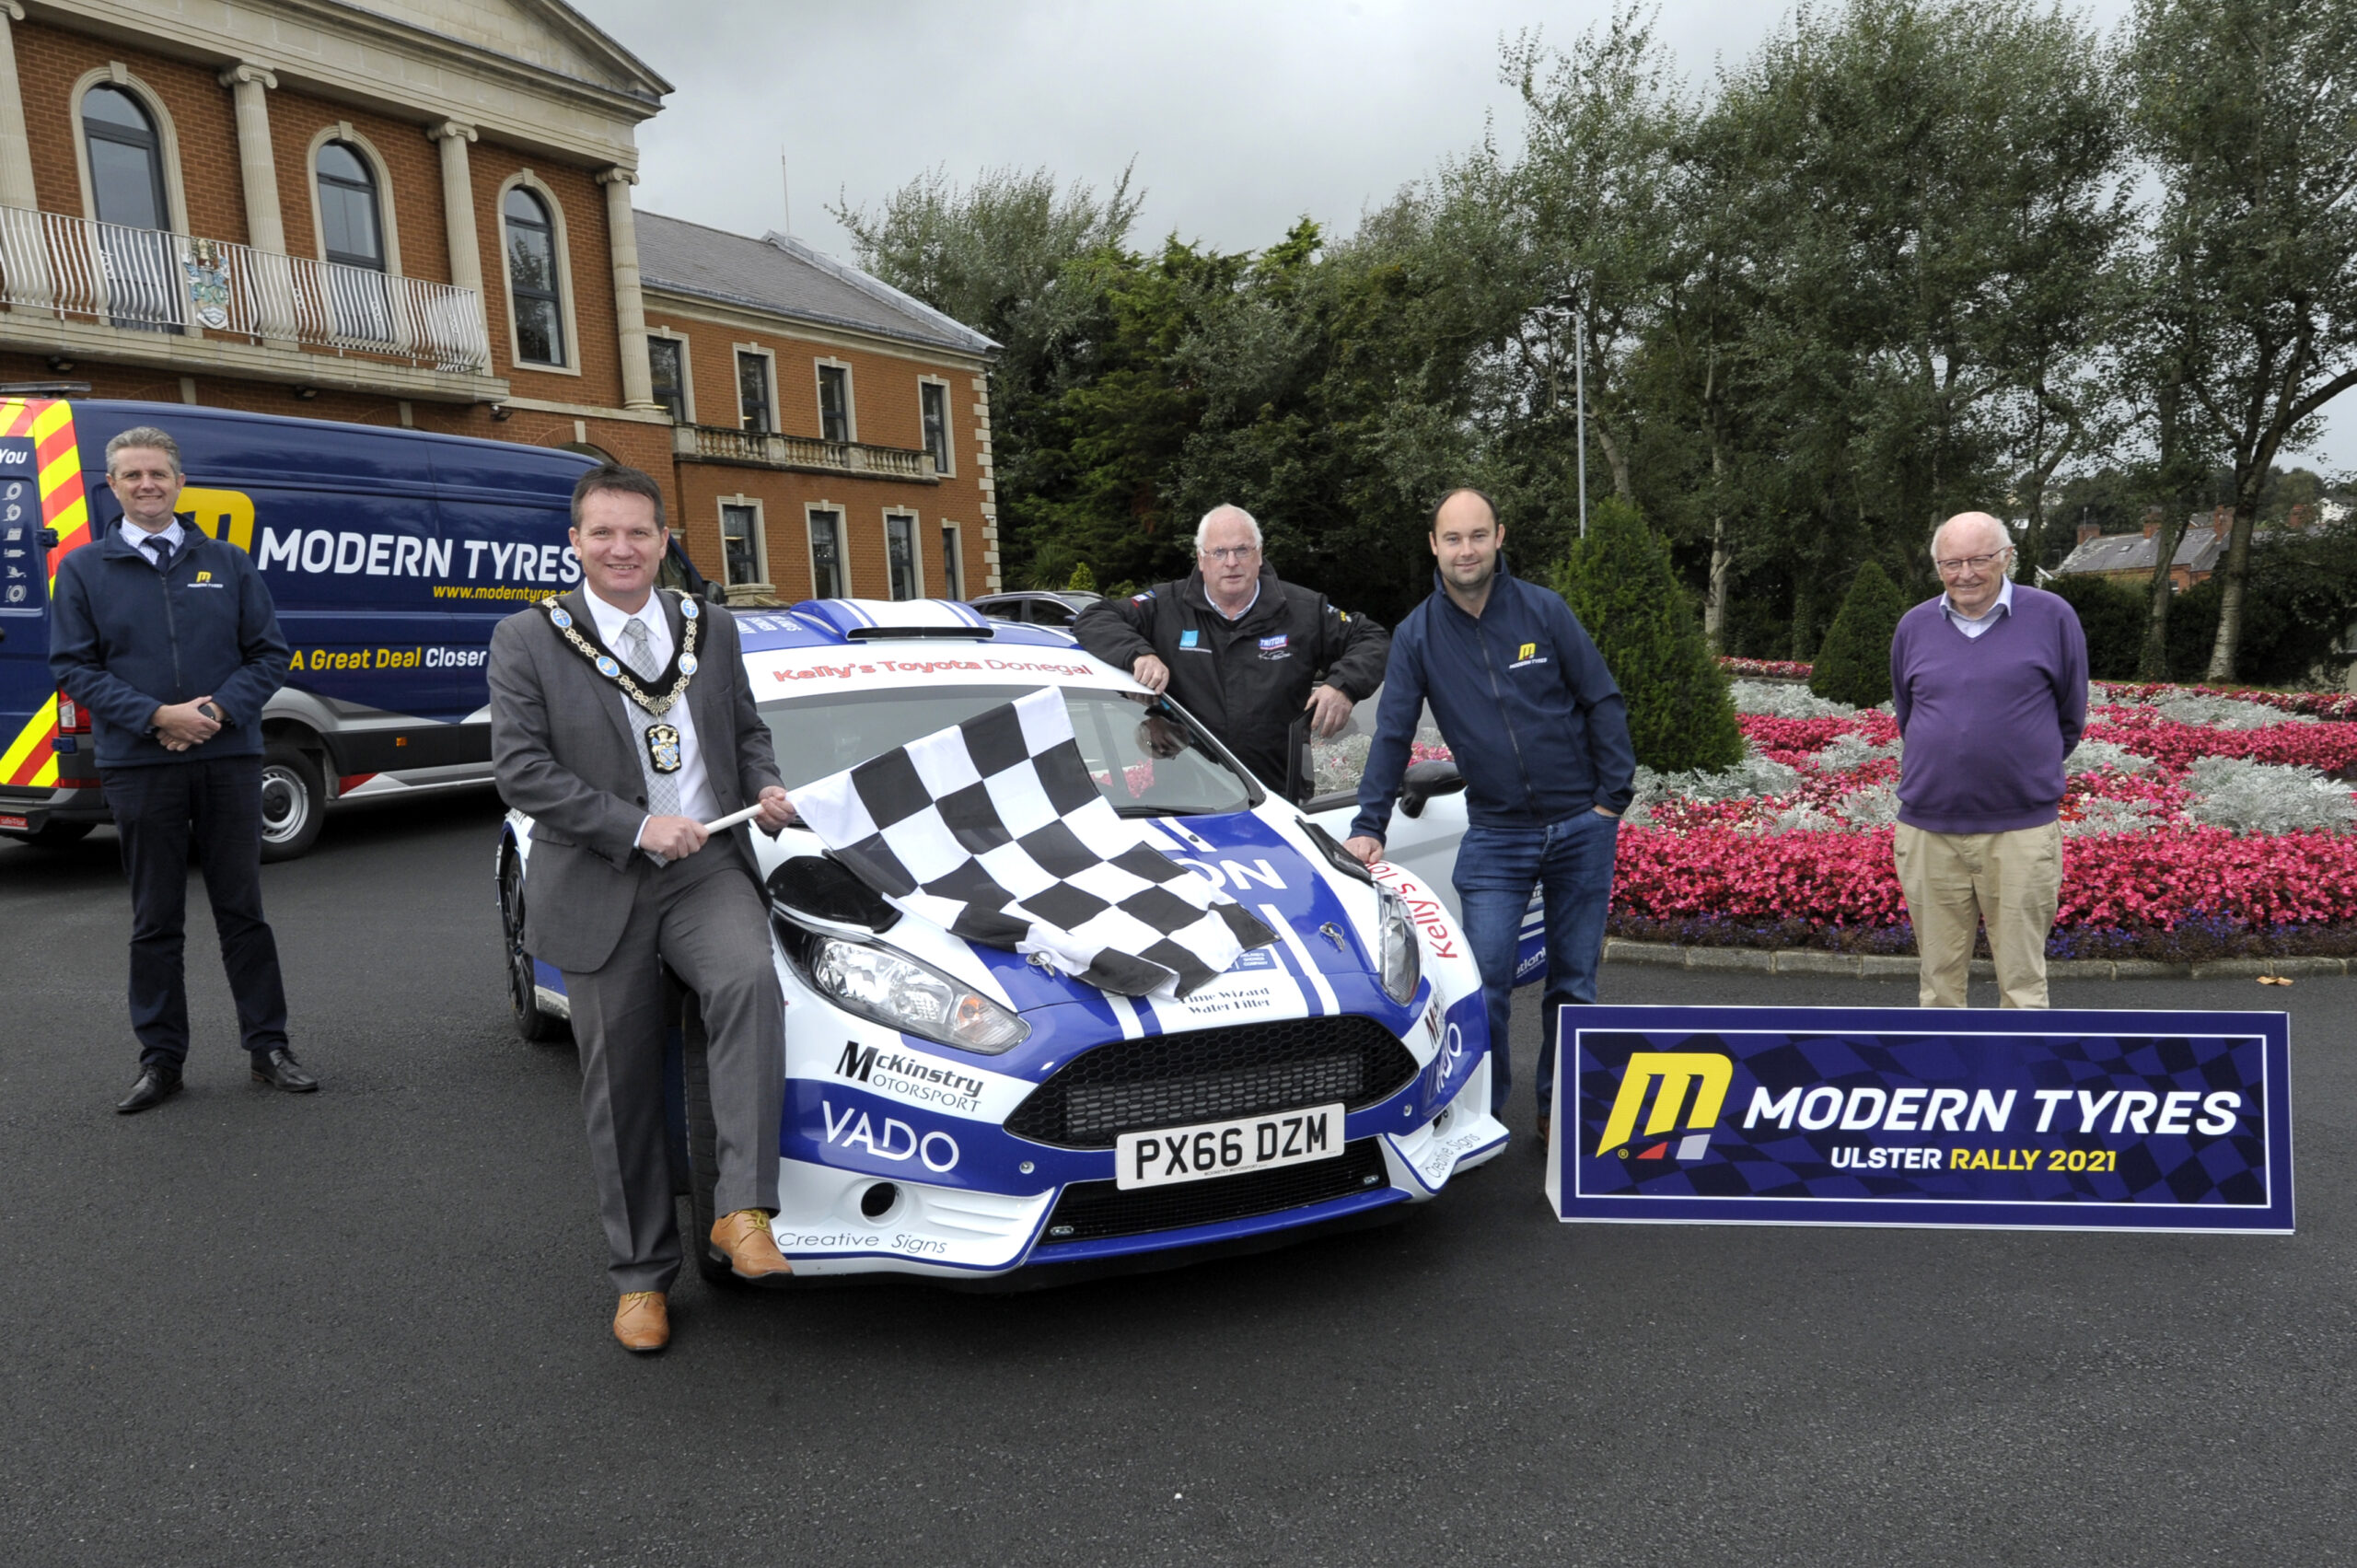 ULSTER RALLY SECURES NEW TITLE SPONSOR